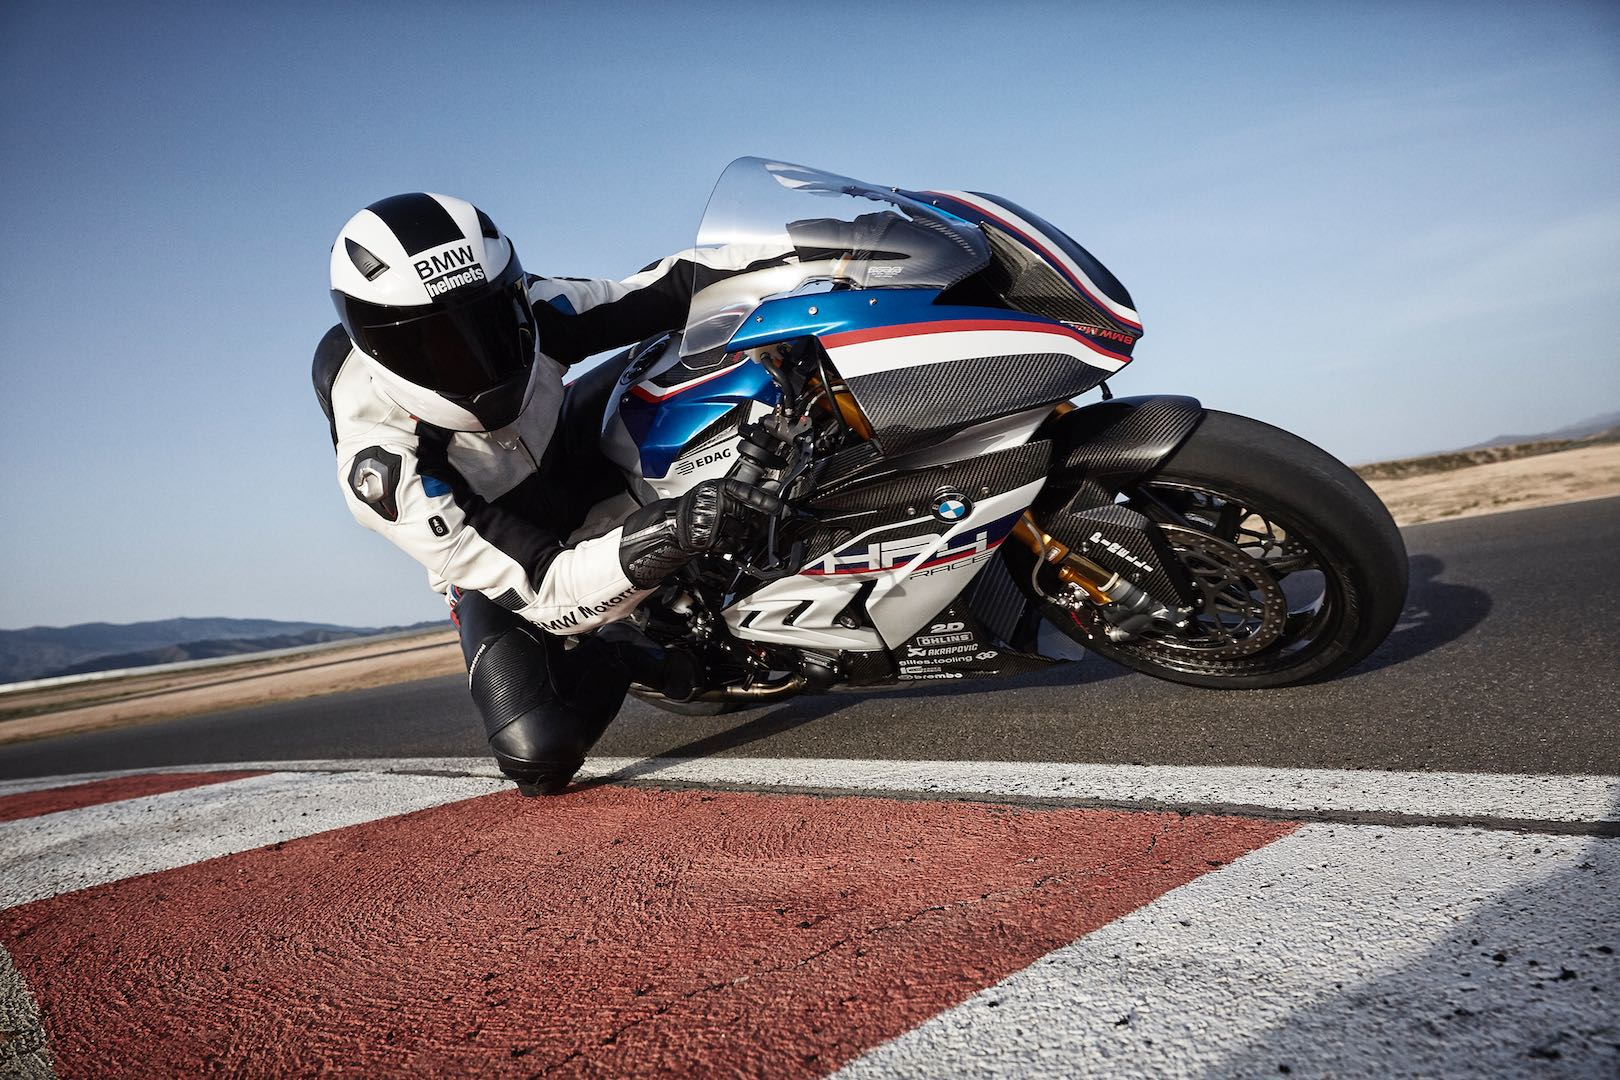 BMW HP4 RACE vs. Ducati 1299 Superleggera